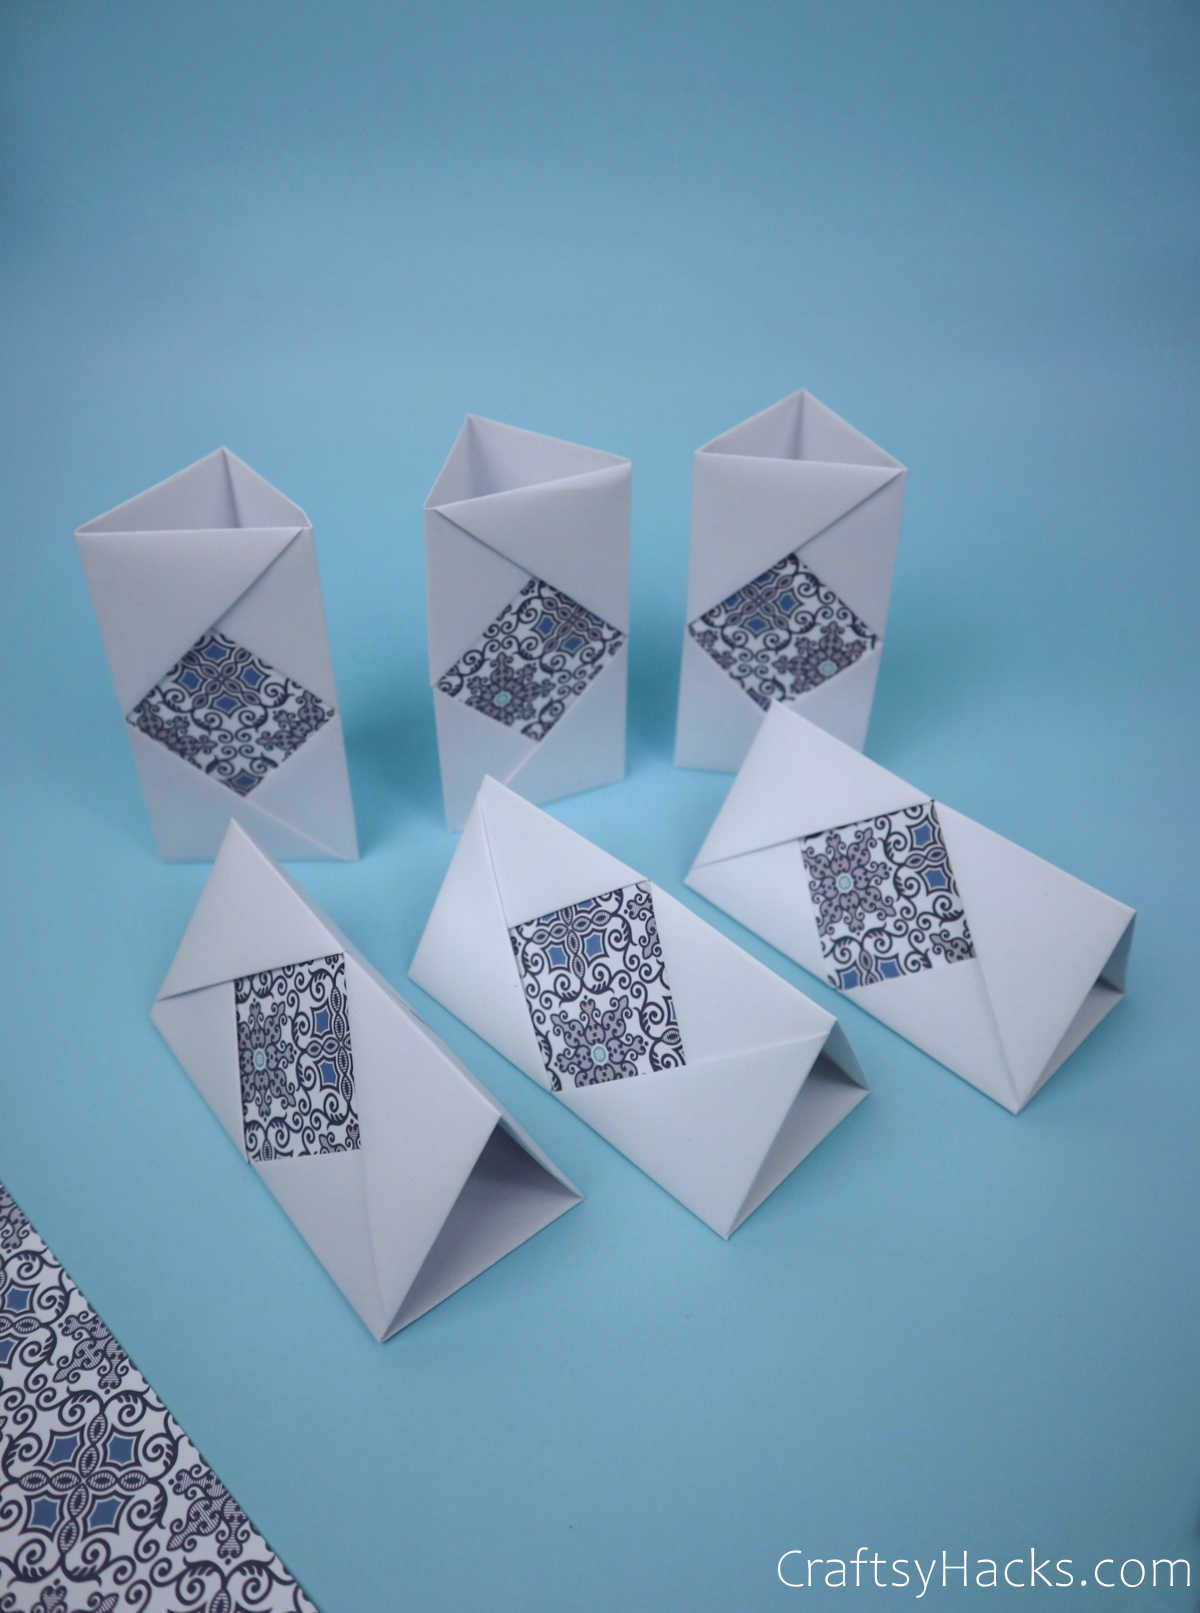 6 sections of folded paper